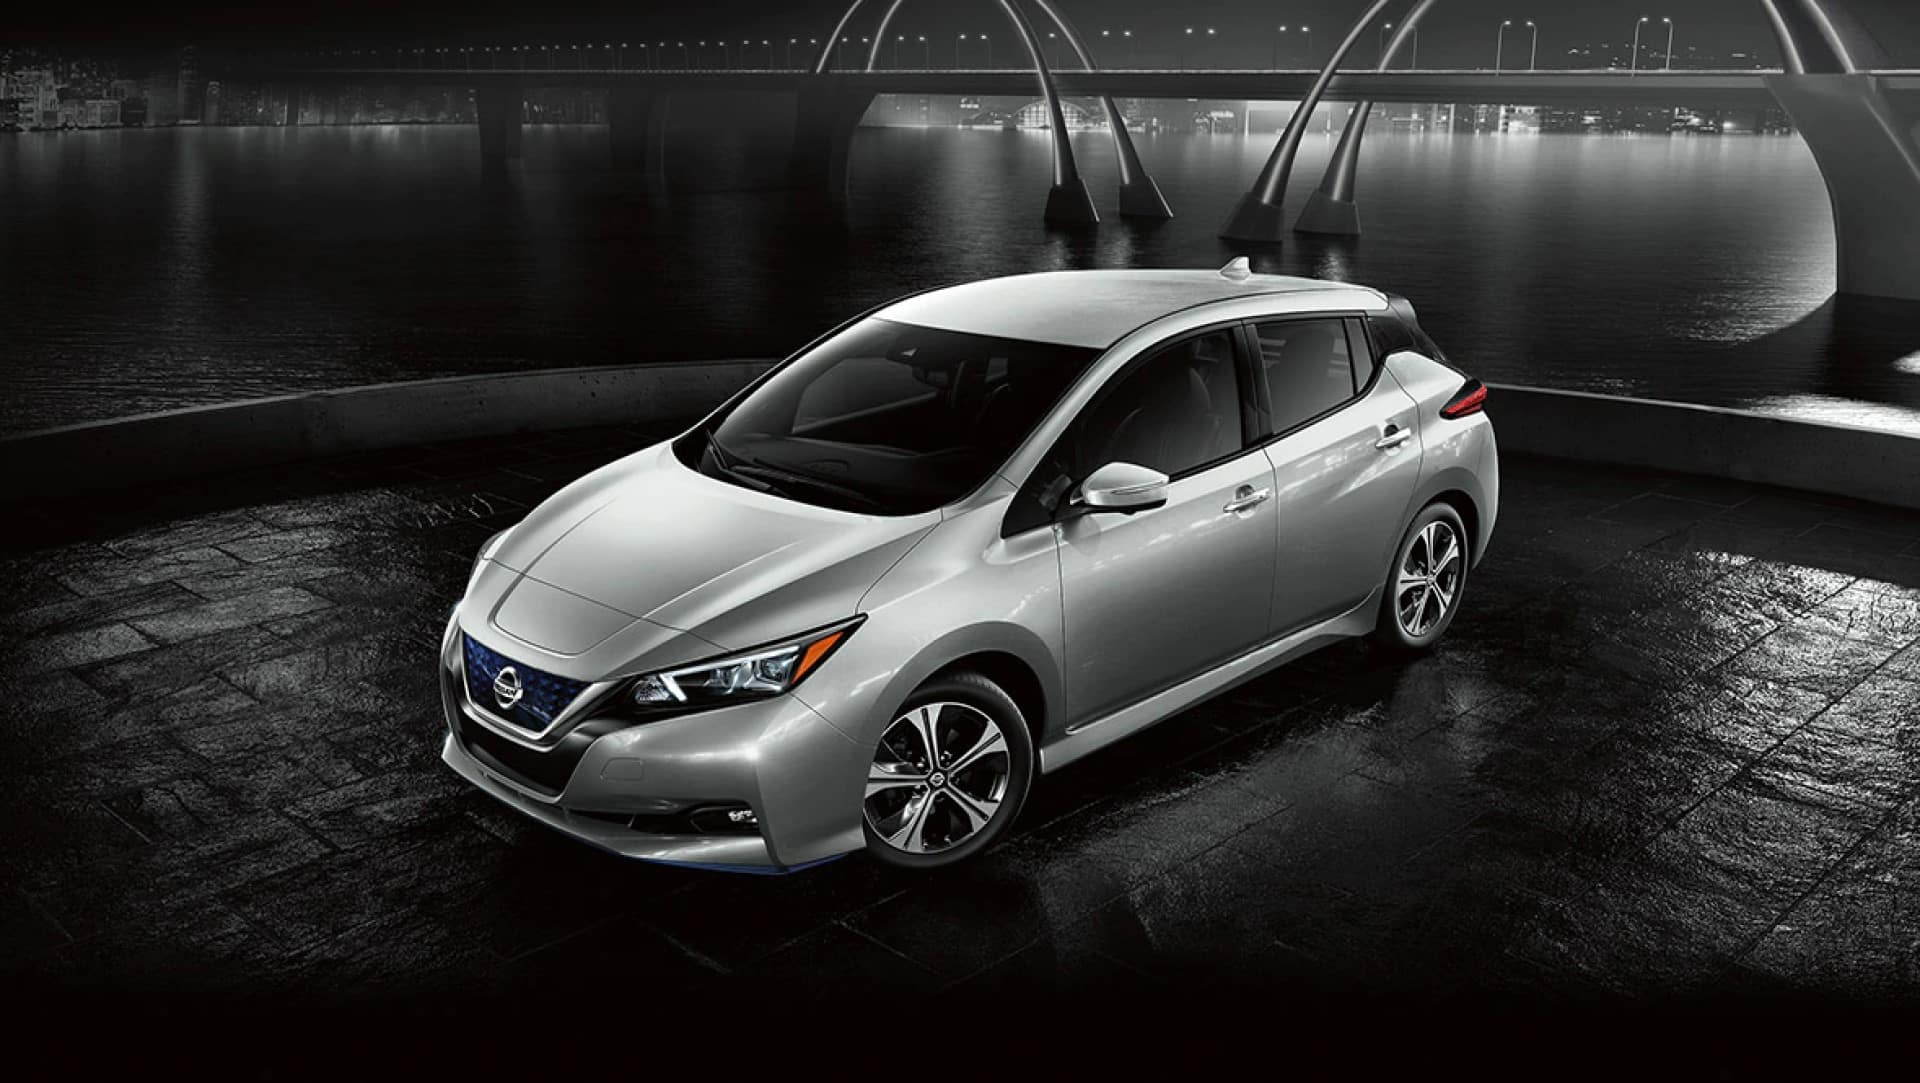 Nissan_LEAF_Parked_At_Night